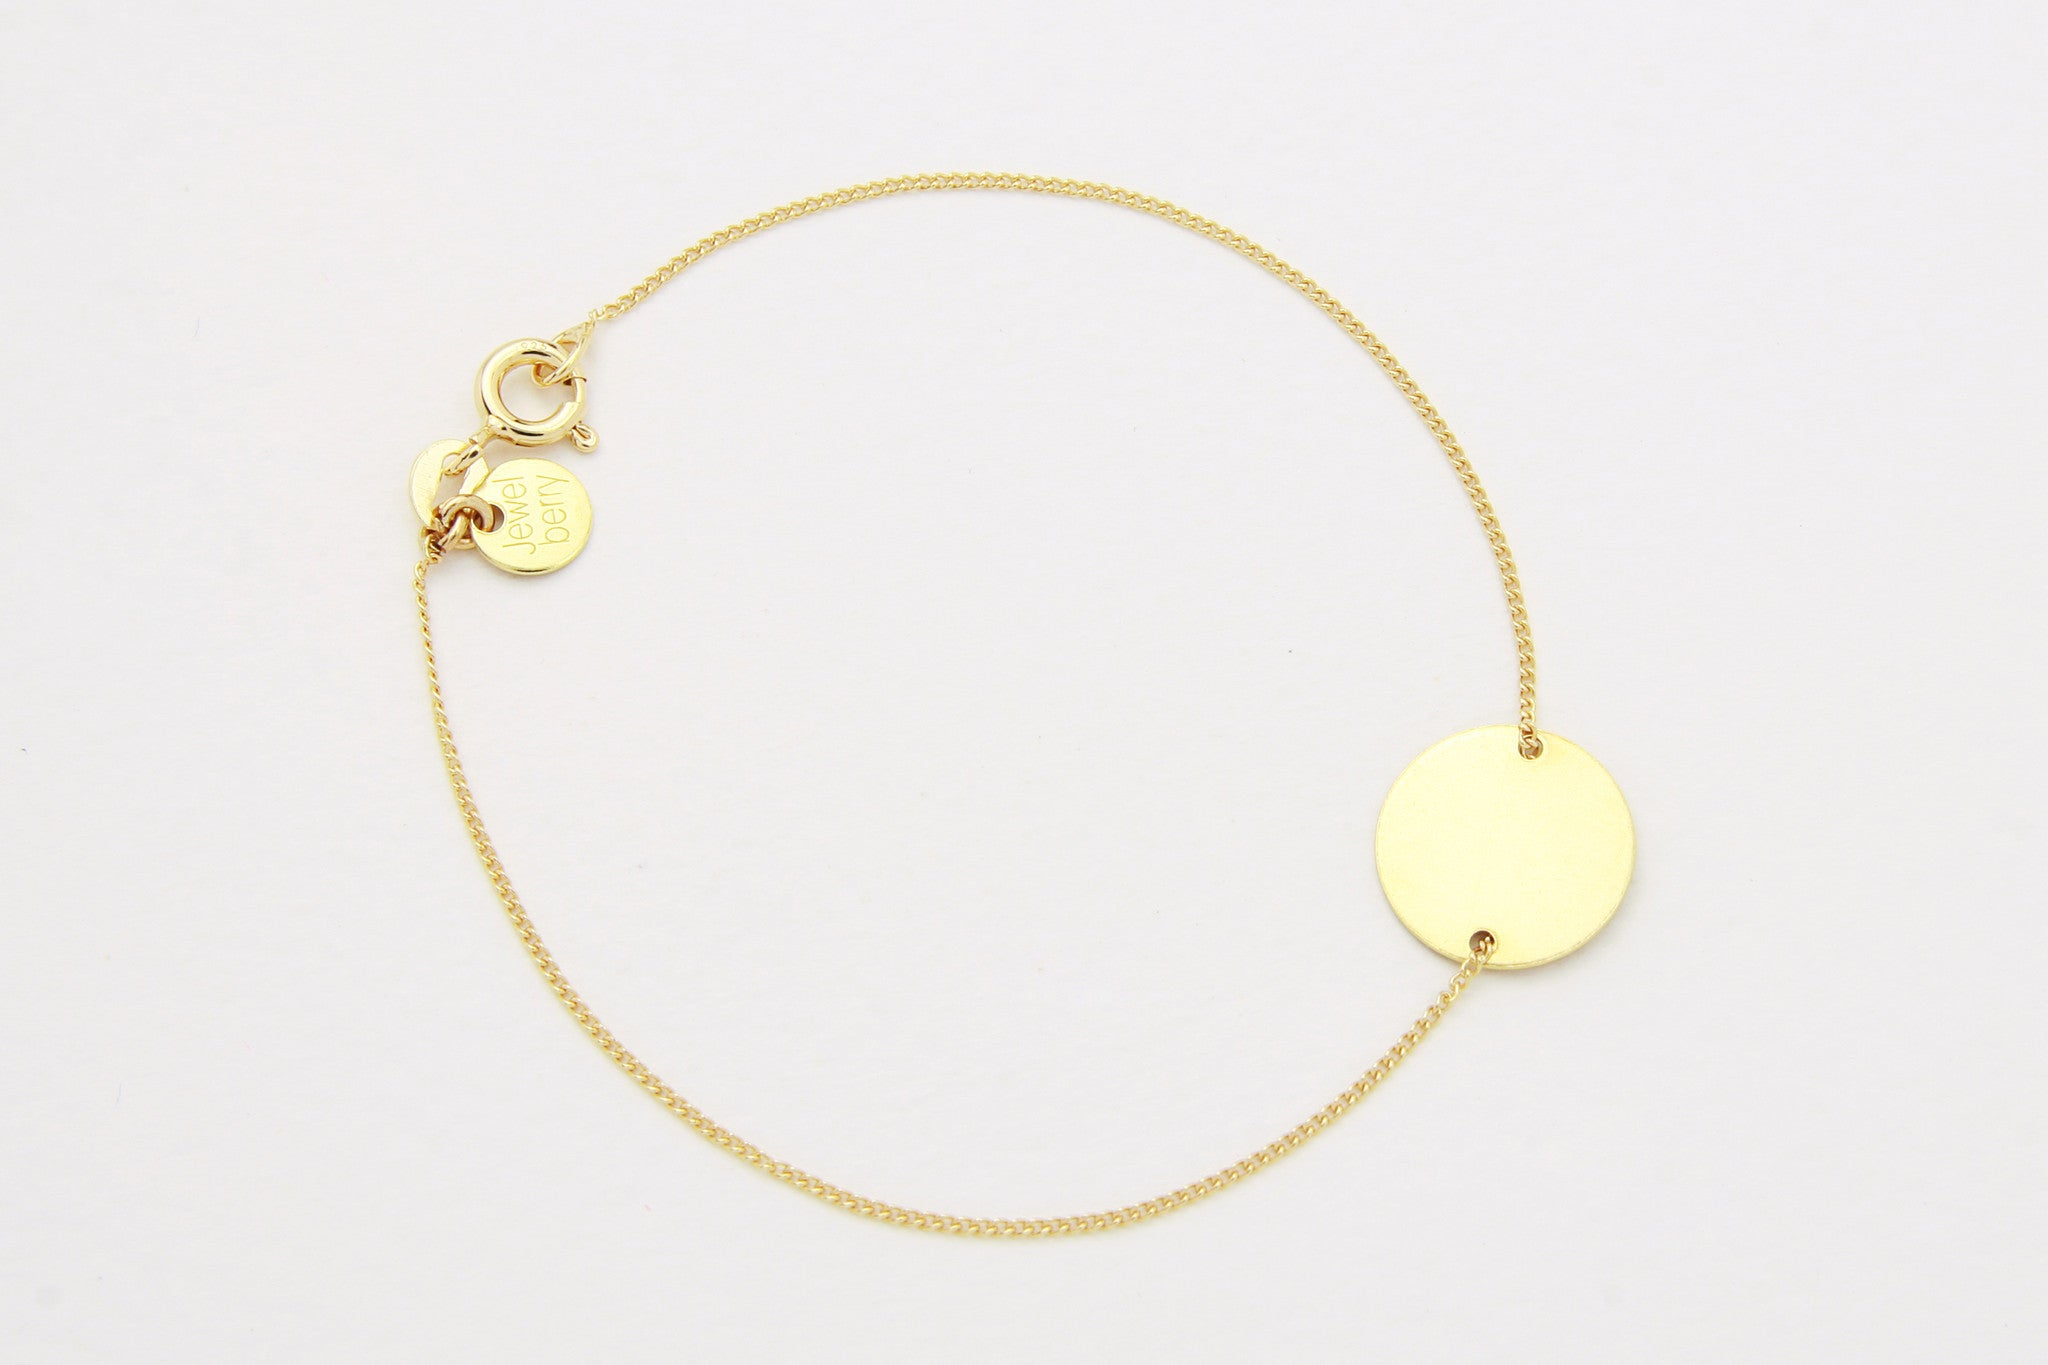 jewelberry armband bracelet medium disc double yellow gold plated sterling silver fine jewelry handmade with love fairtrade curb chain